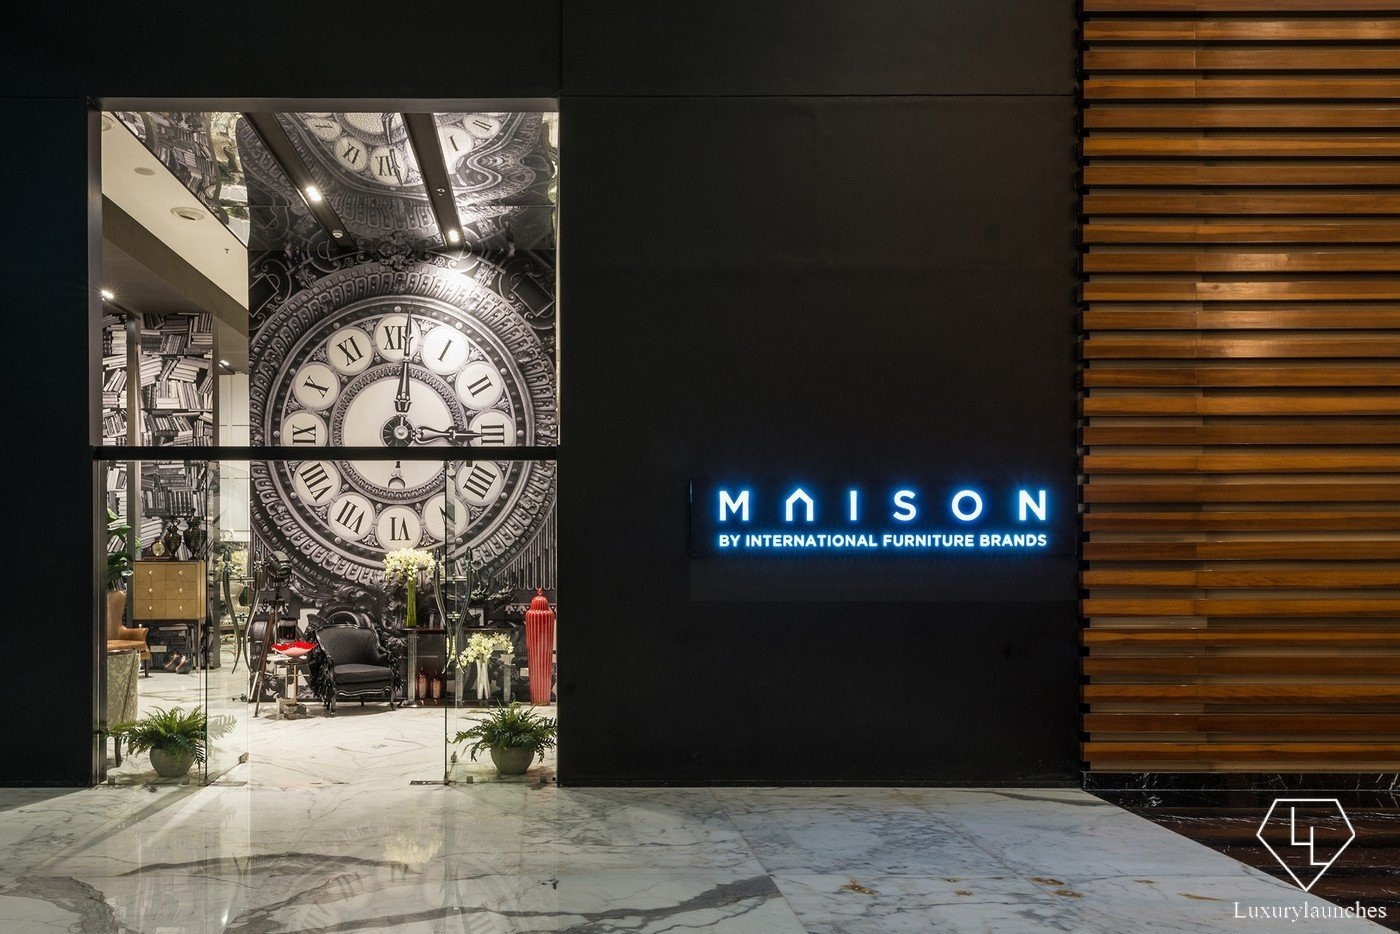 Luxury Furniture Store Maison Debuts In India With A Mumbai Flagship